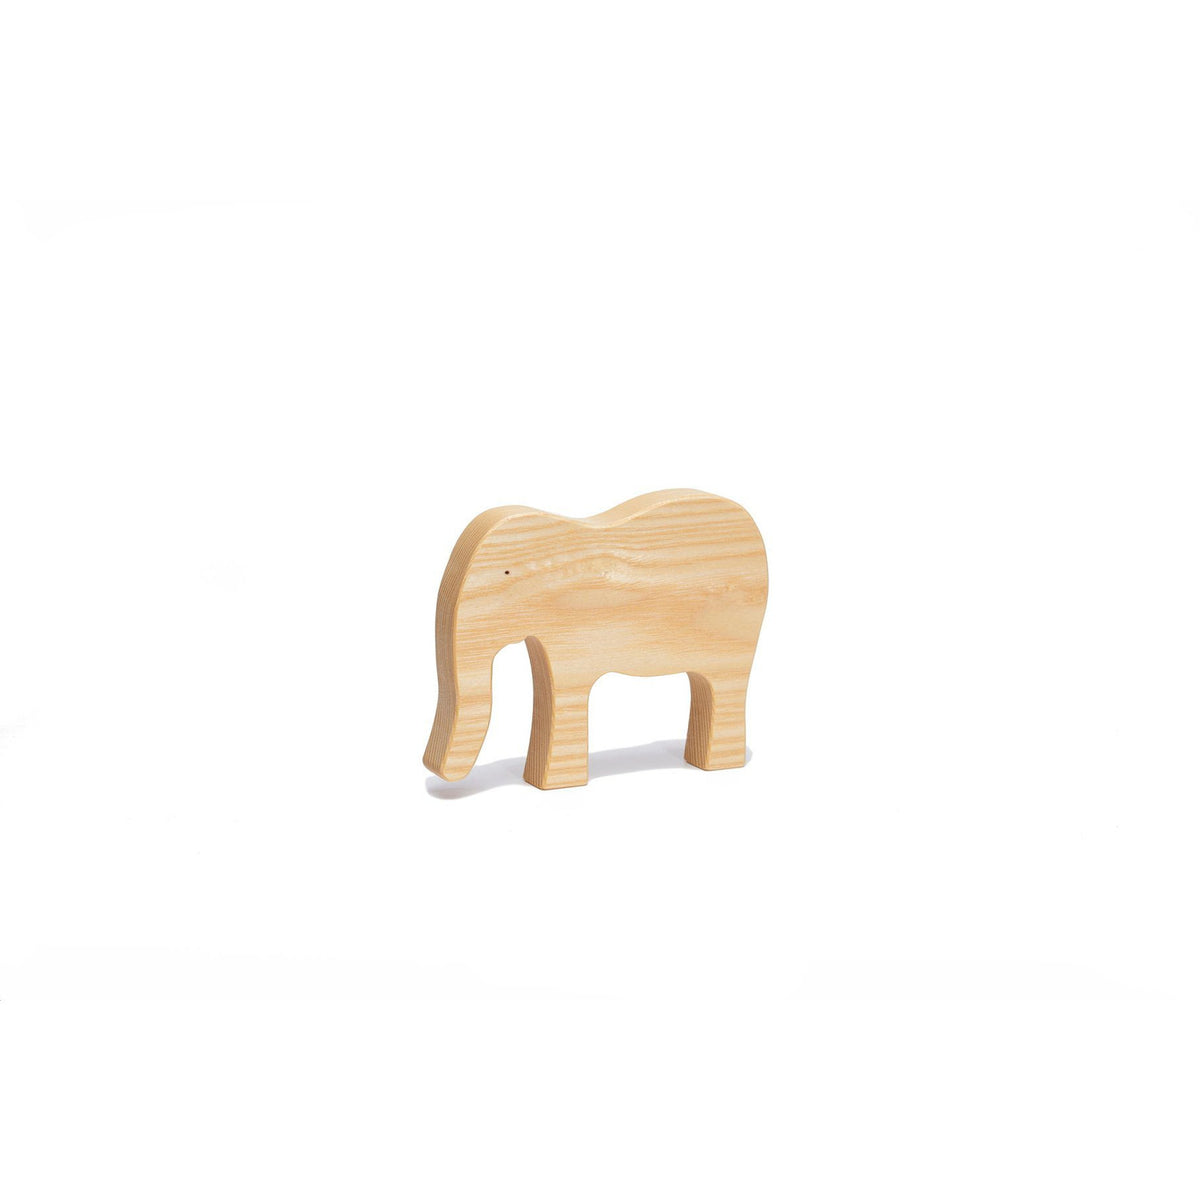 Ocamora Wooden Animal: Elephant